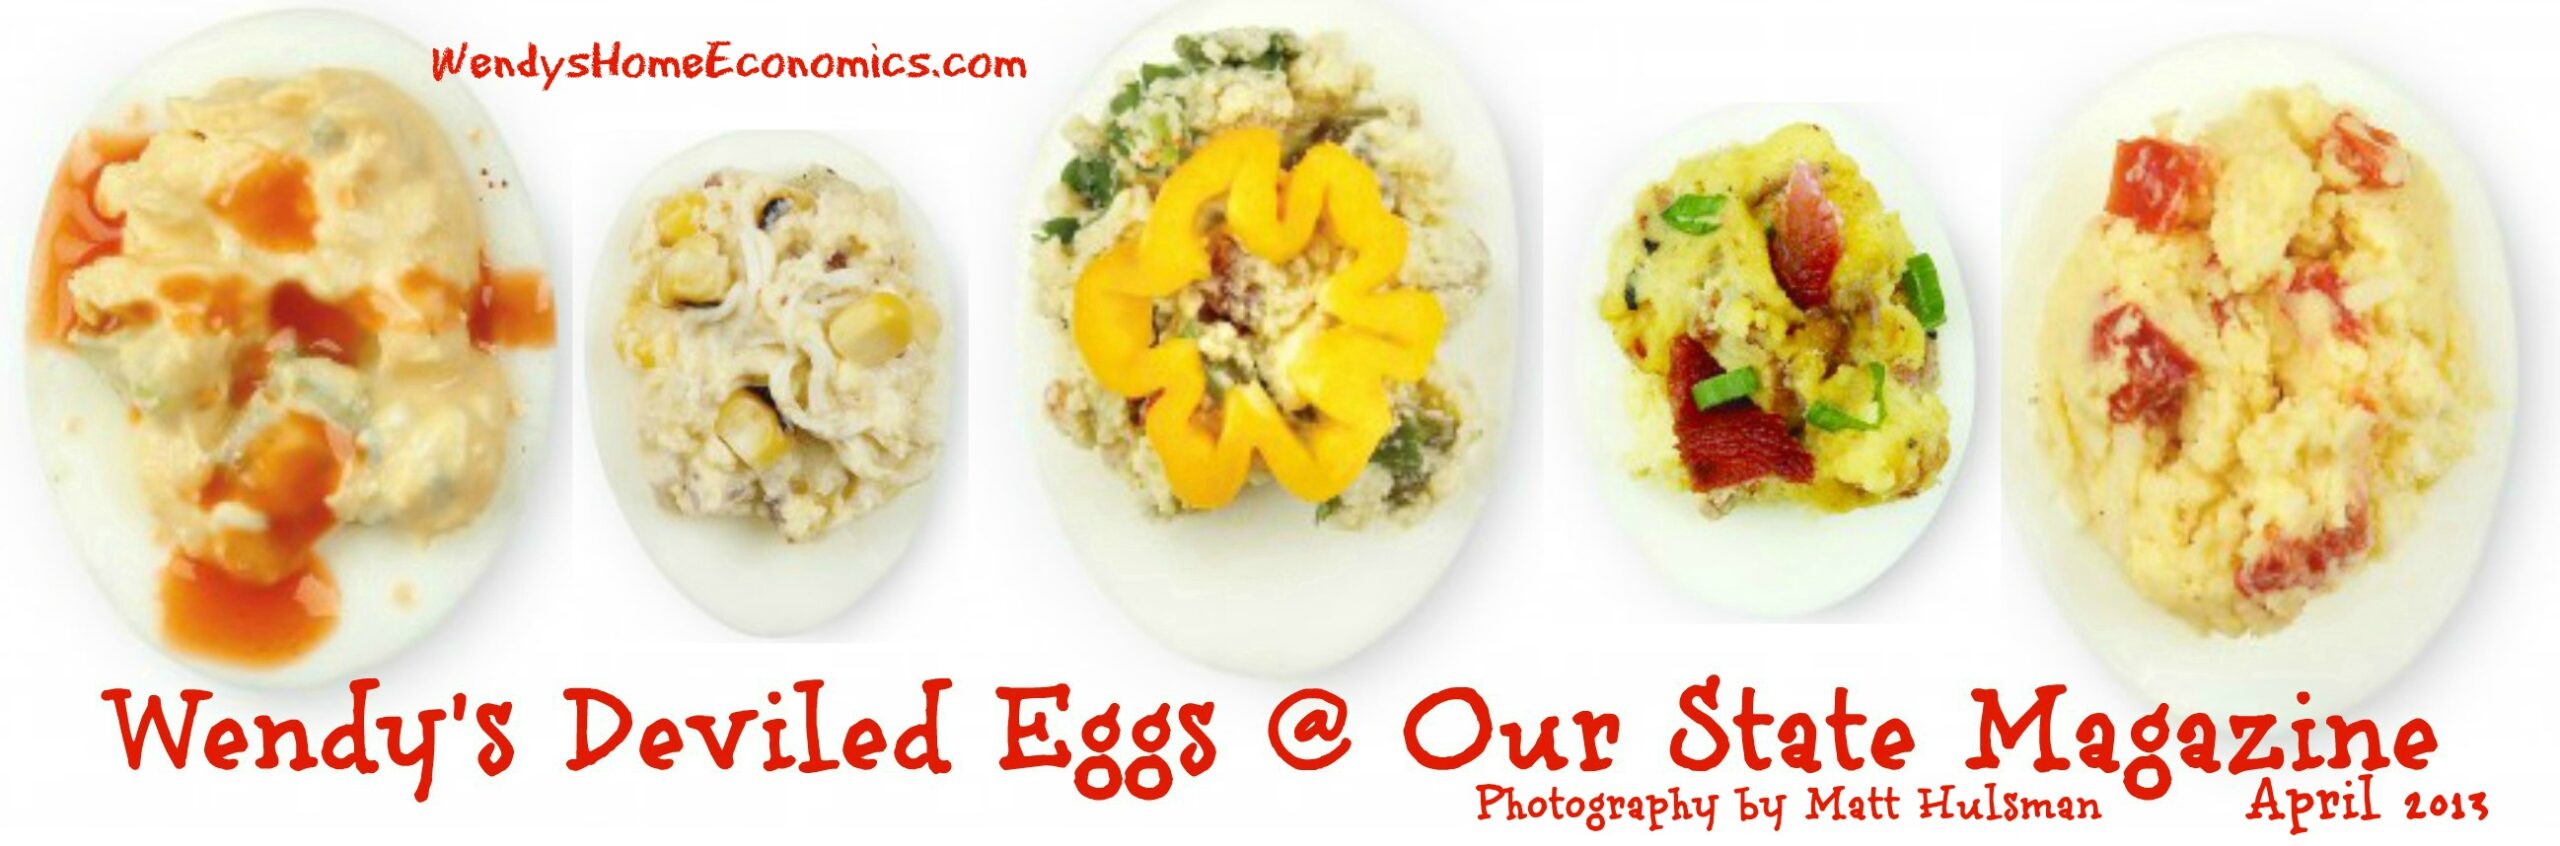 Wendy's Deviled Eggs at Our State Magazine